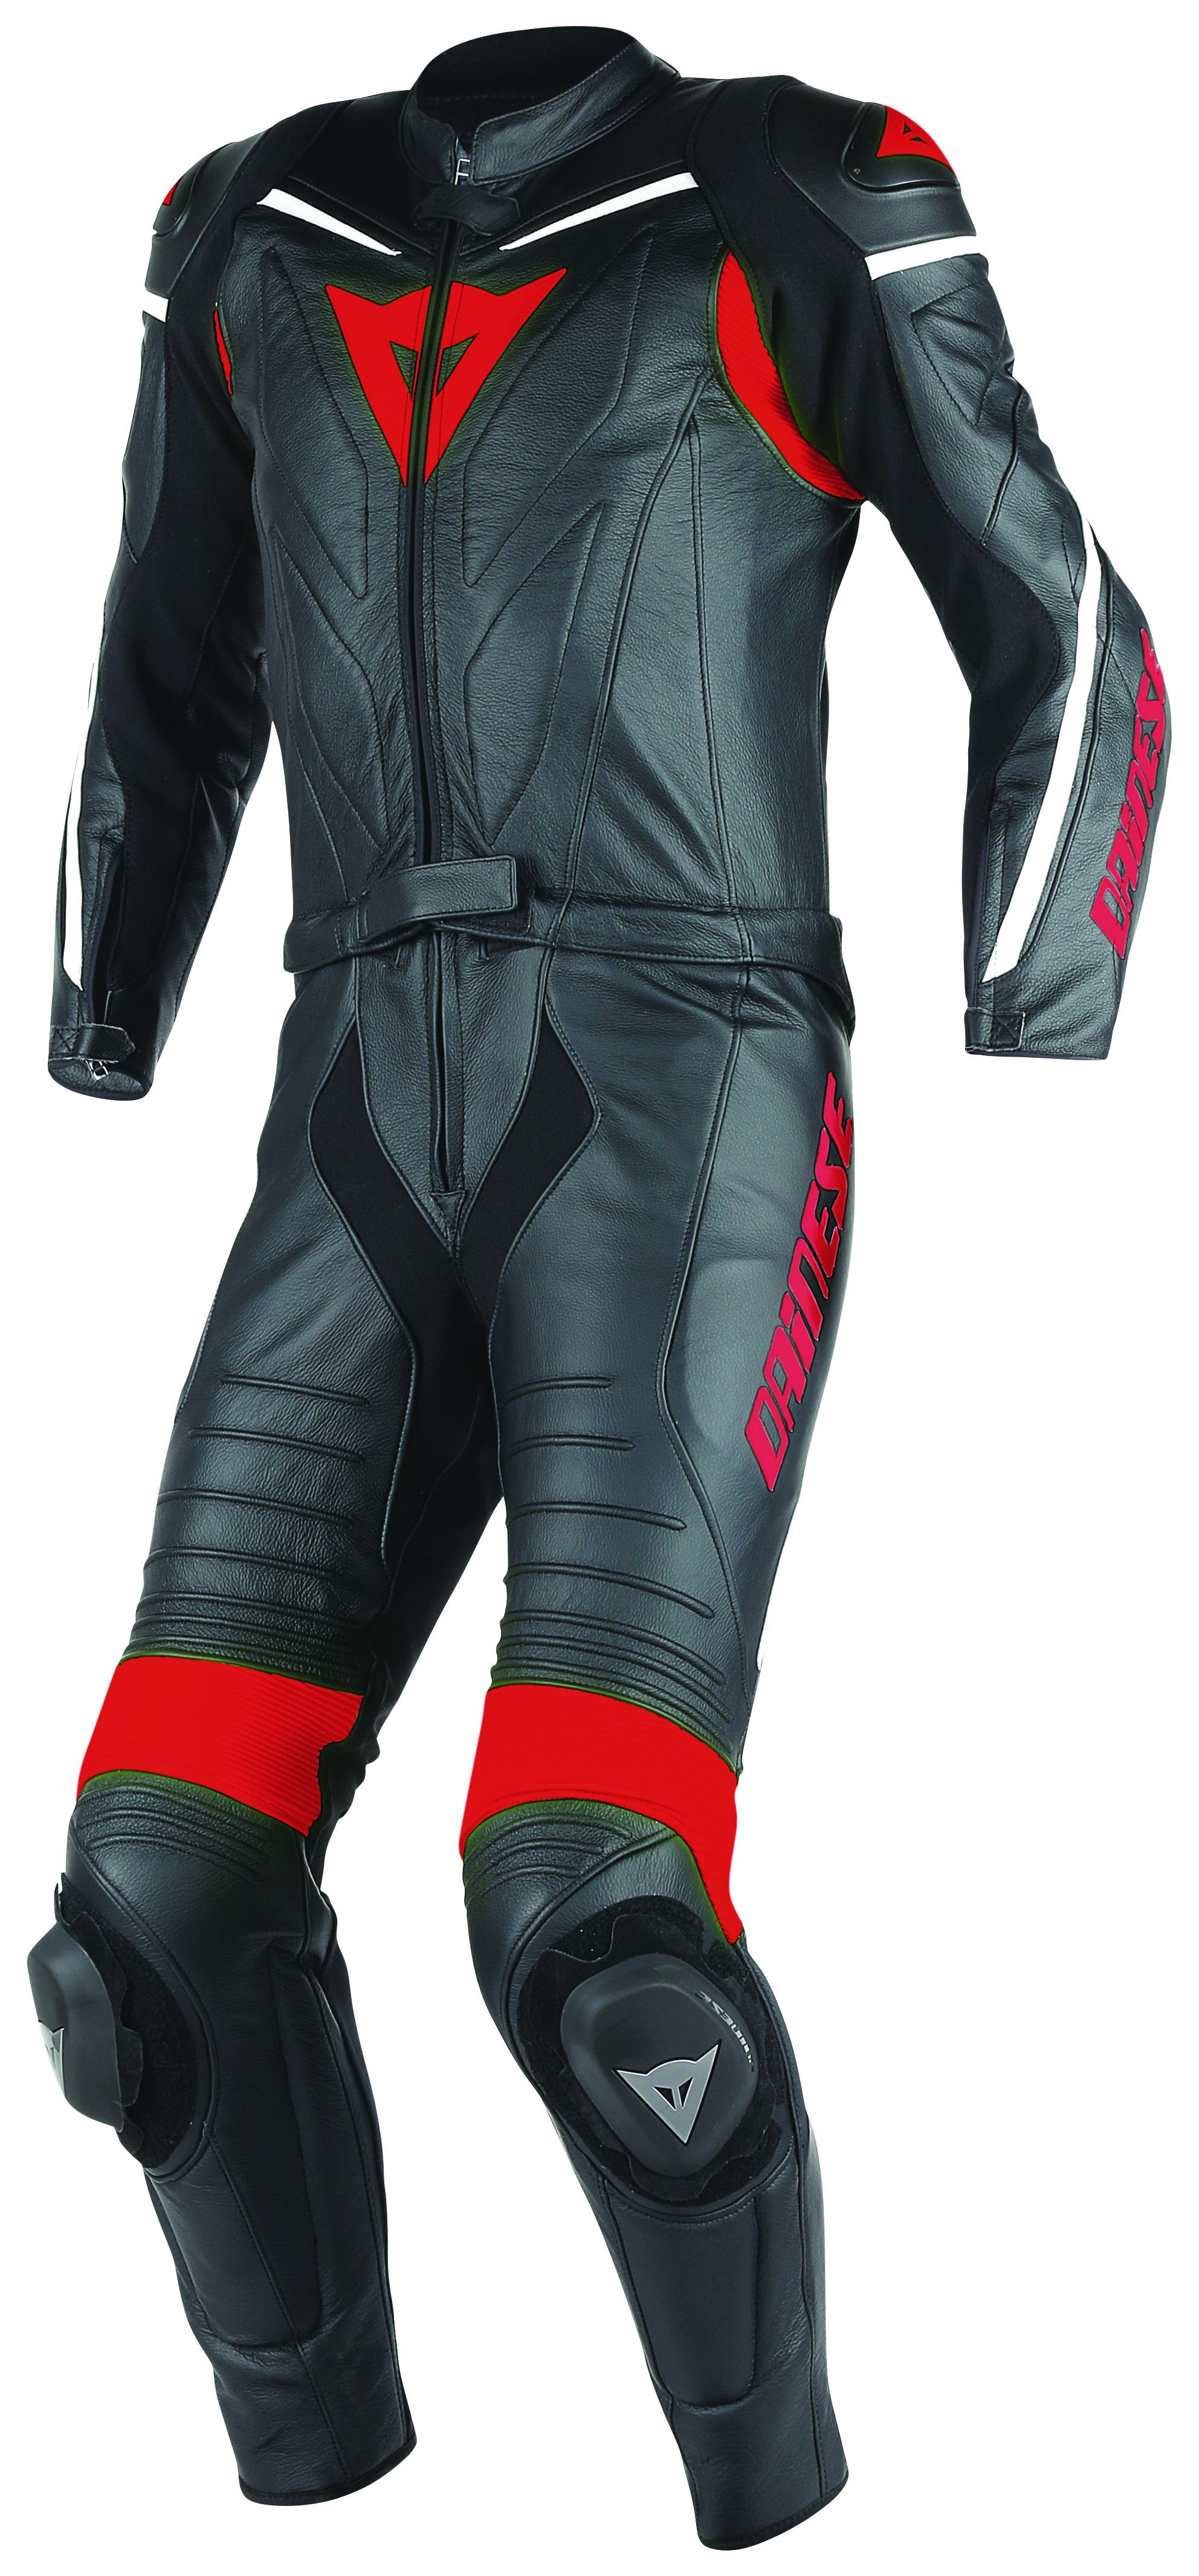 Motorcycle New Black Two piece Leather Track Racing Suit CE Approved Protection SMALL